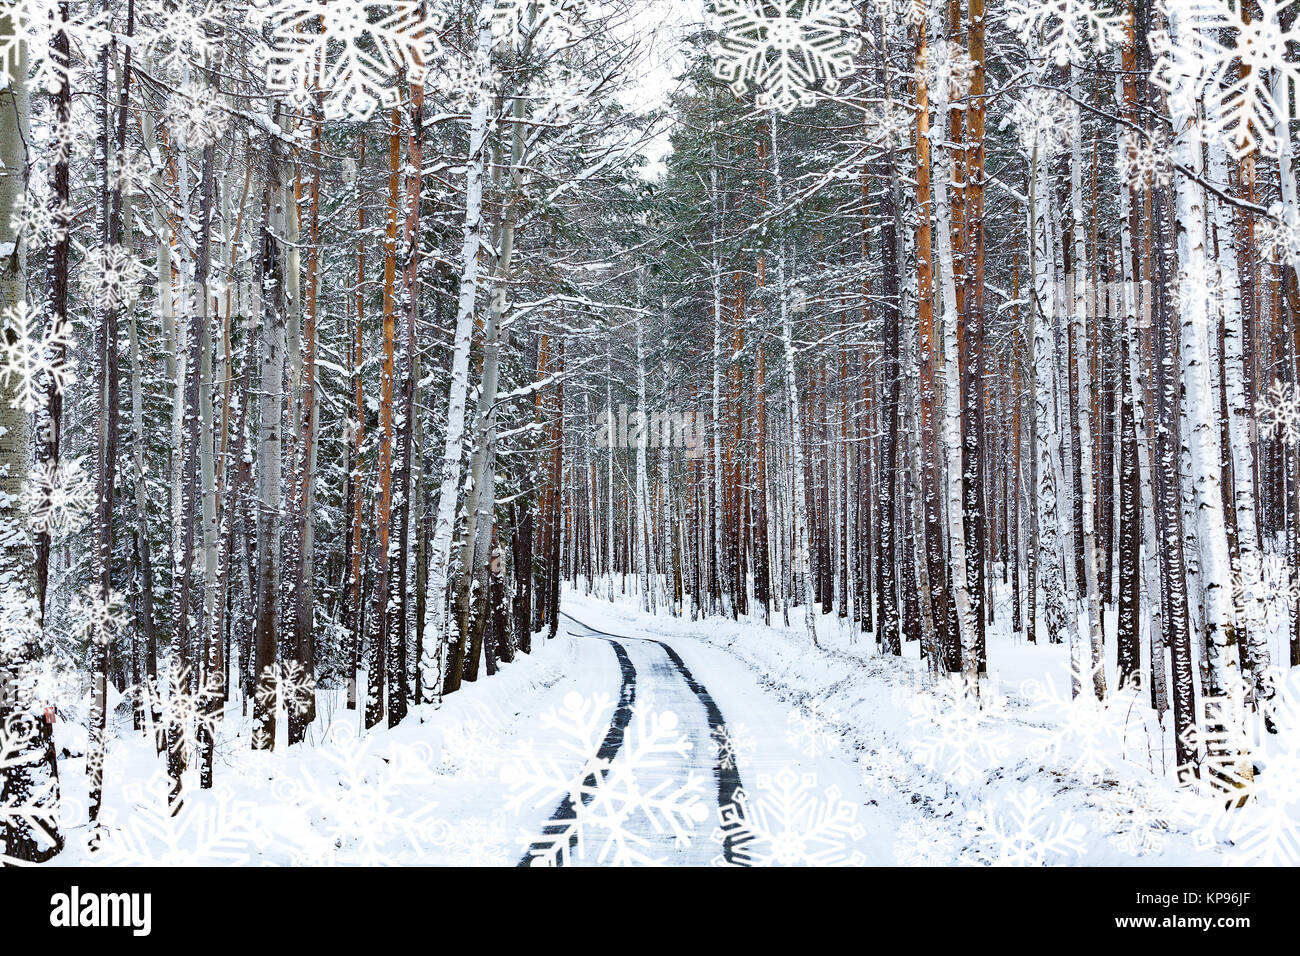 Road in winter forest. Snowcovered trees - Stock Image